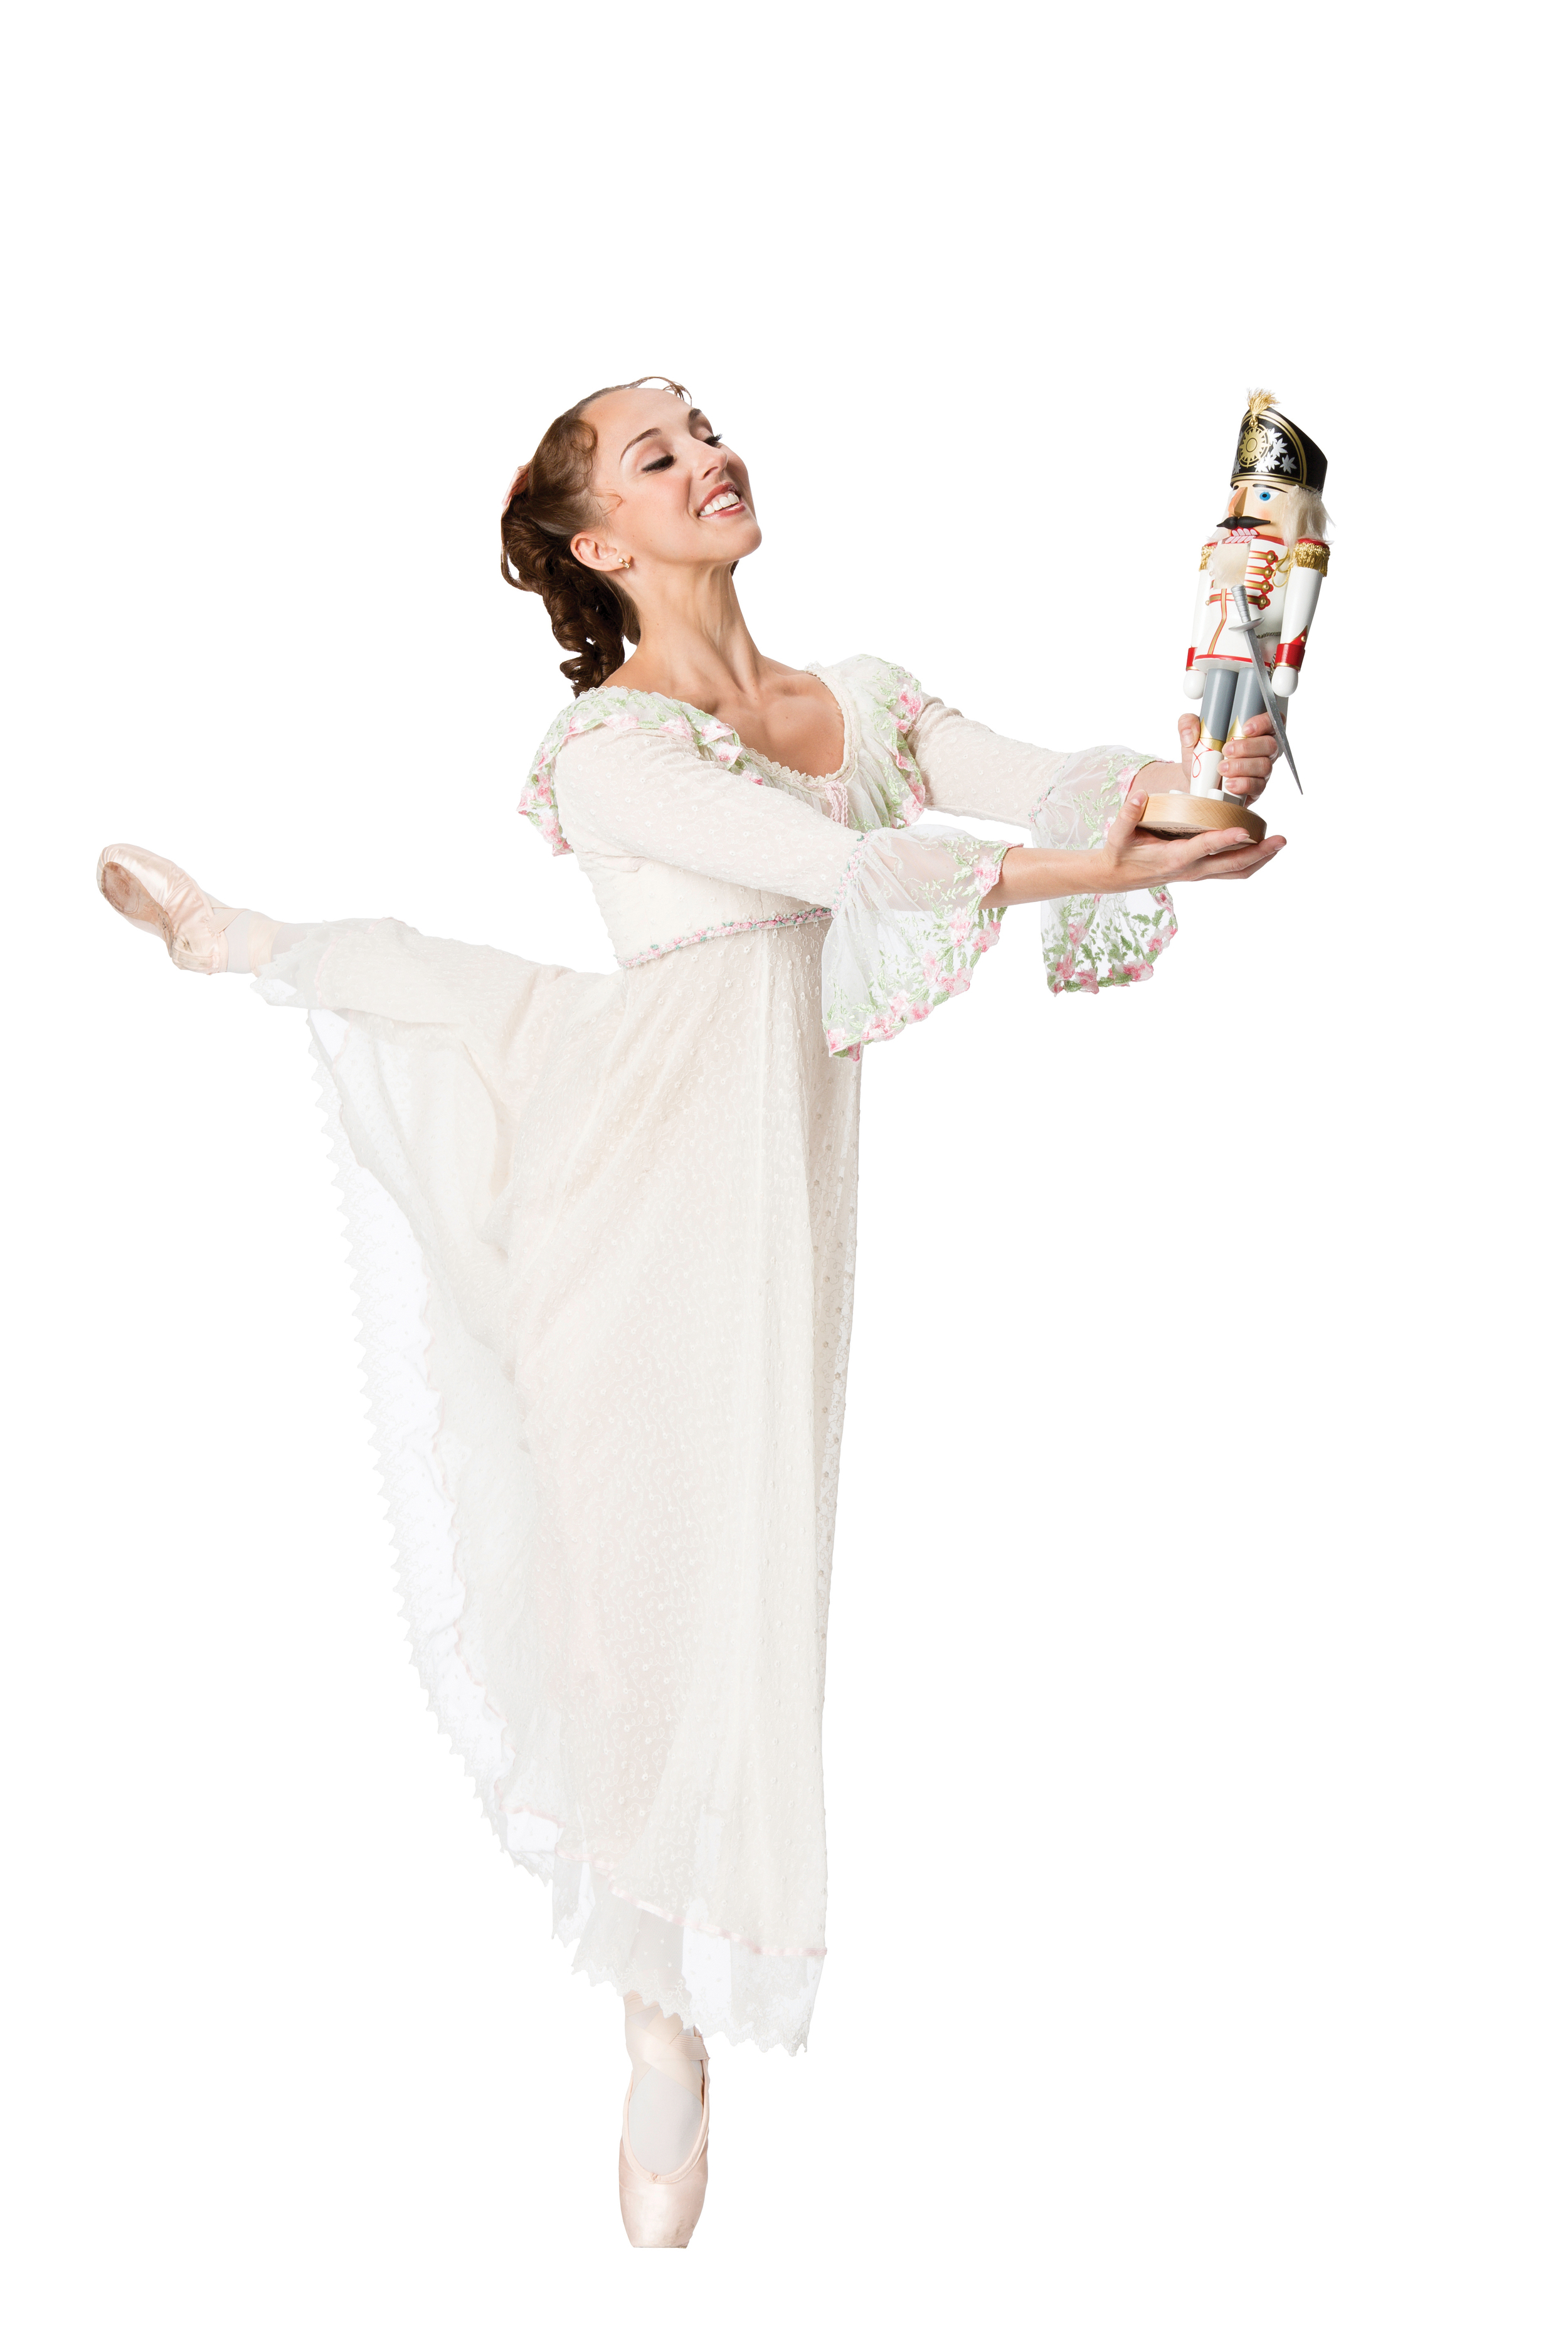 Dana Benton, The Nutcracker Photo: Allen Birnbach